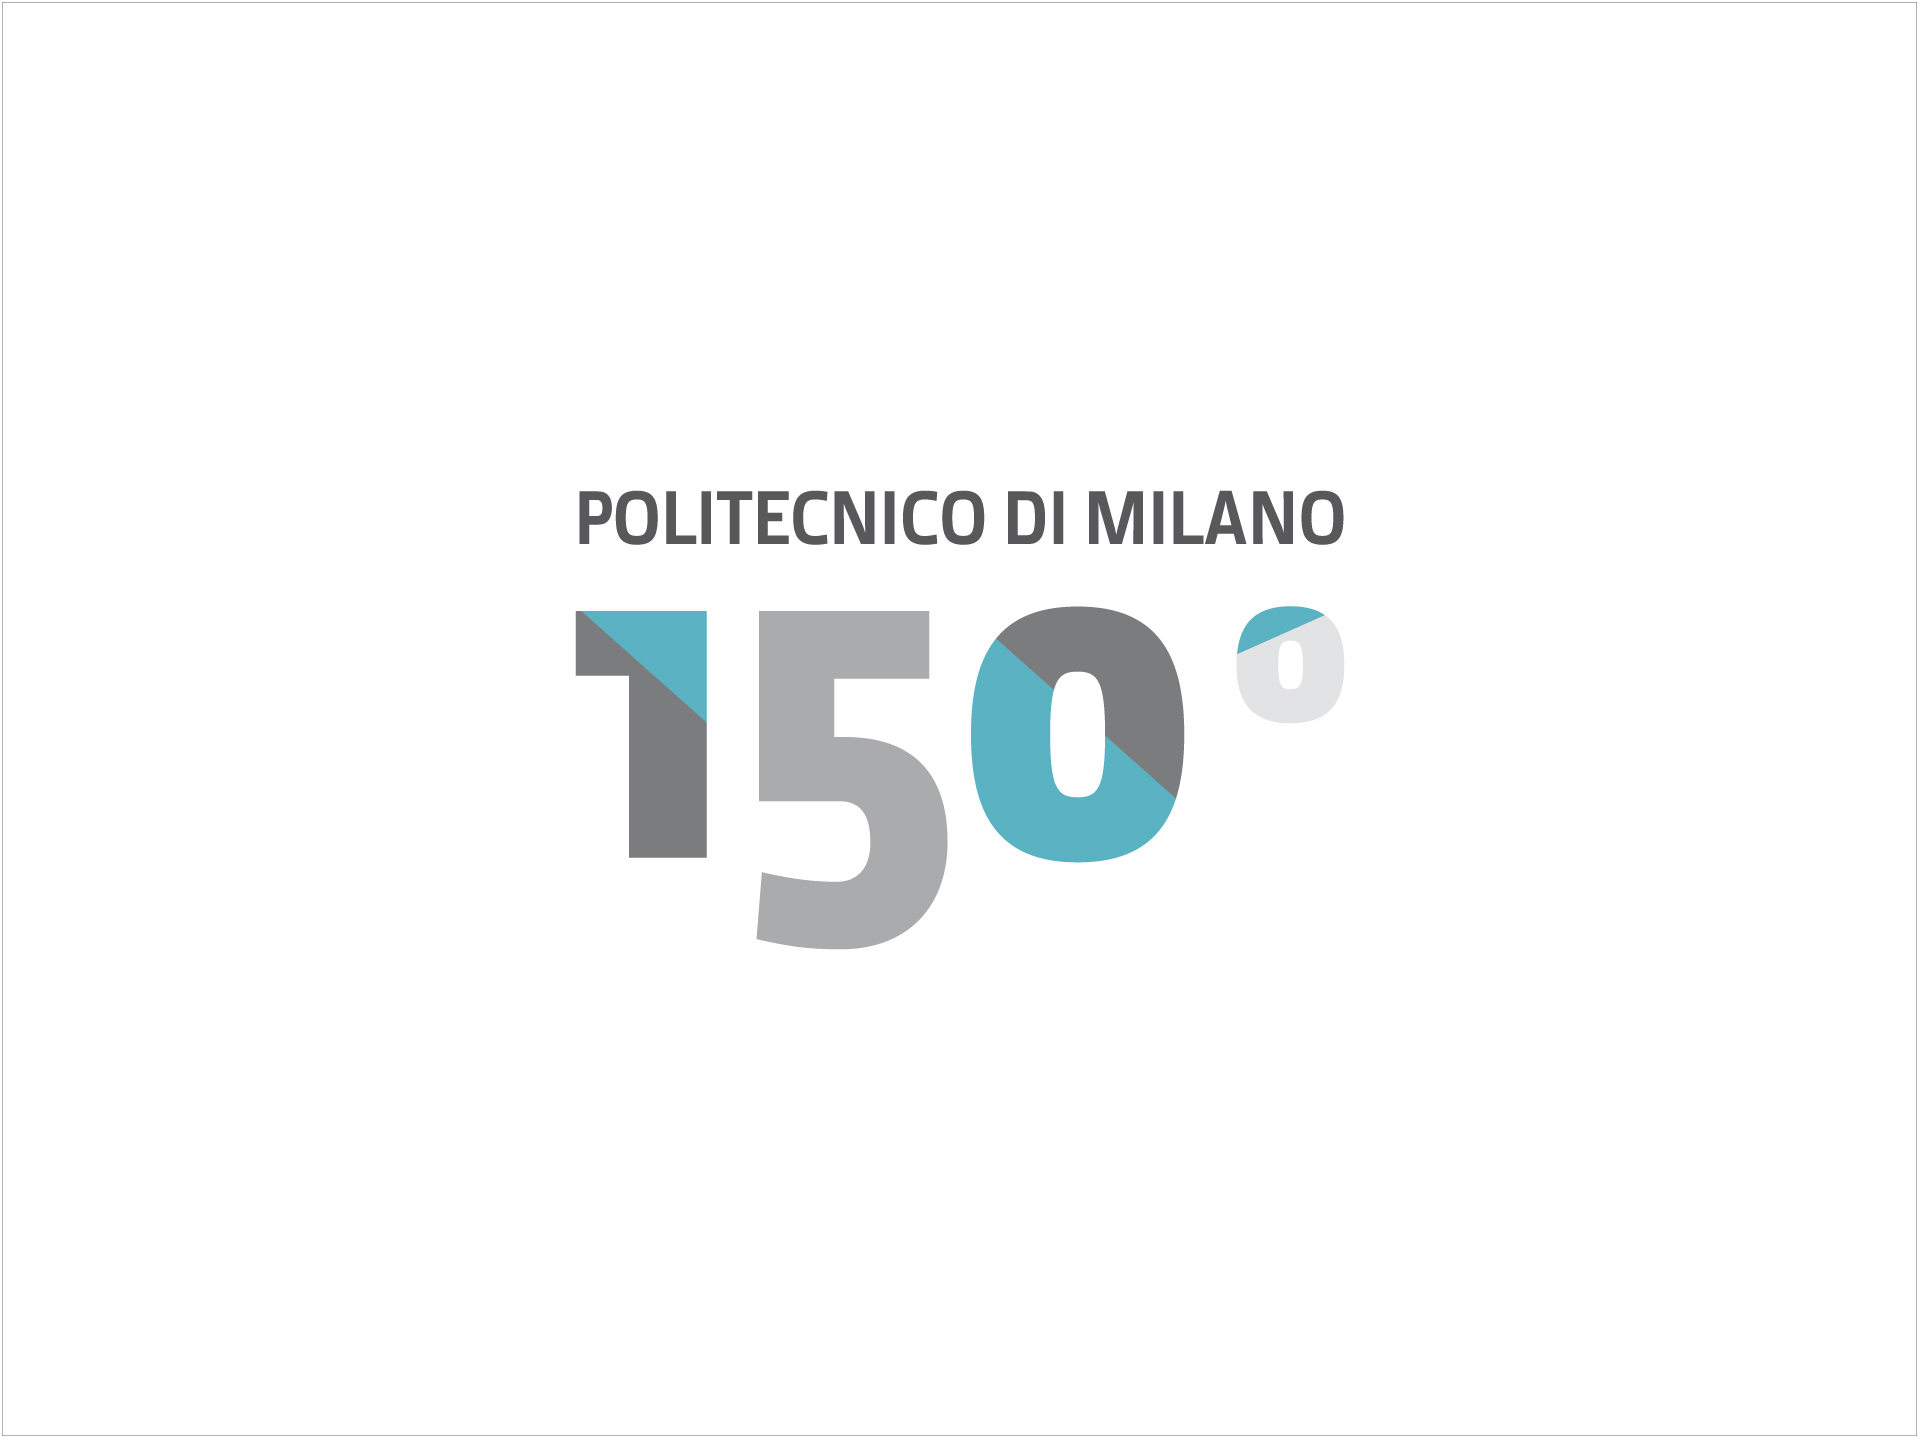 Politecnico di milano 150 anniversary the clocksmiths for Politecnico design